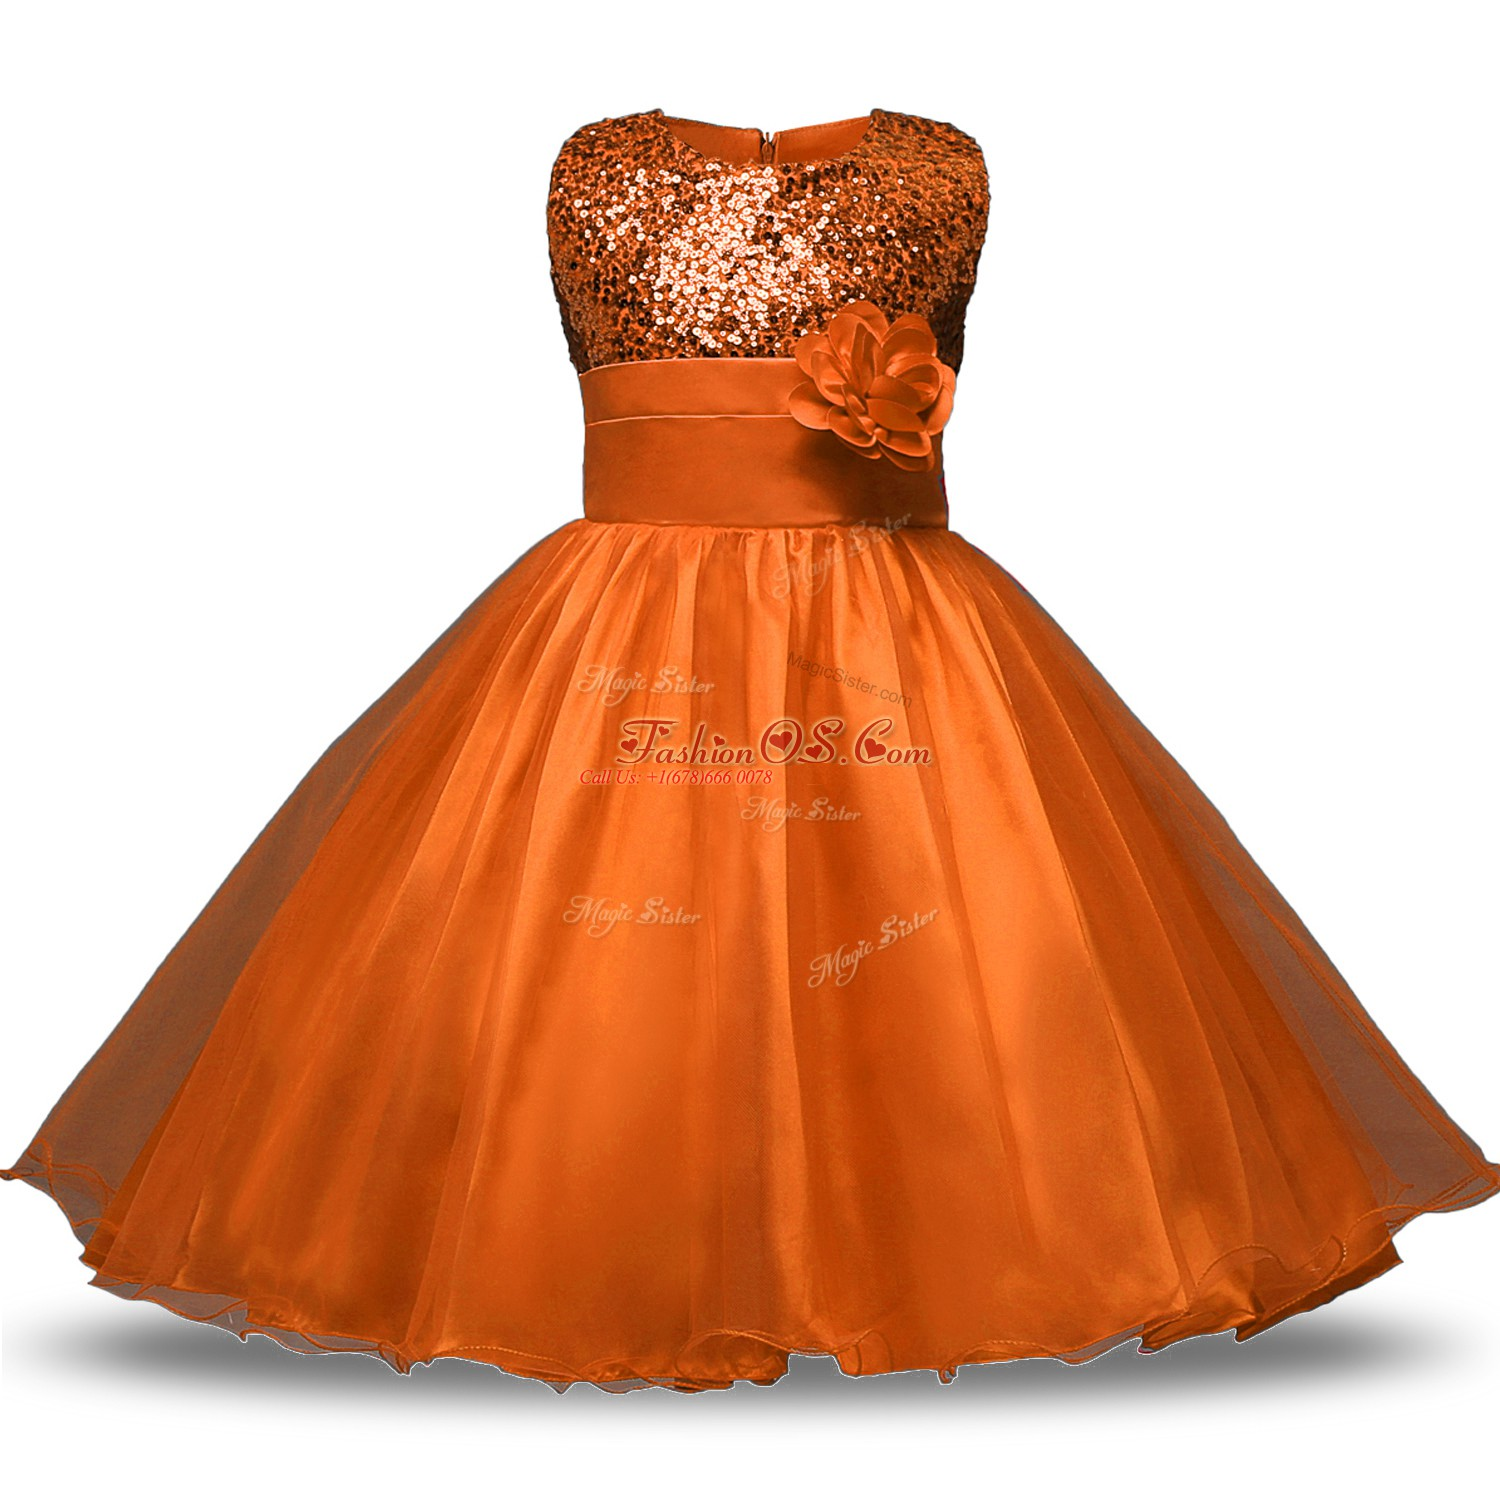 Rust Red Zipper Flower Girl Dresses for Less Belt and Hand Made Flower Sleeveless Knee Length